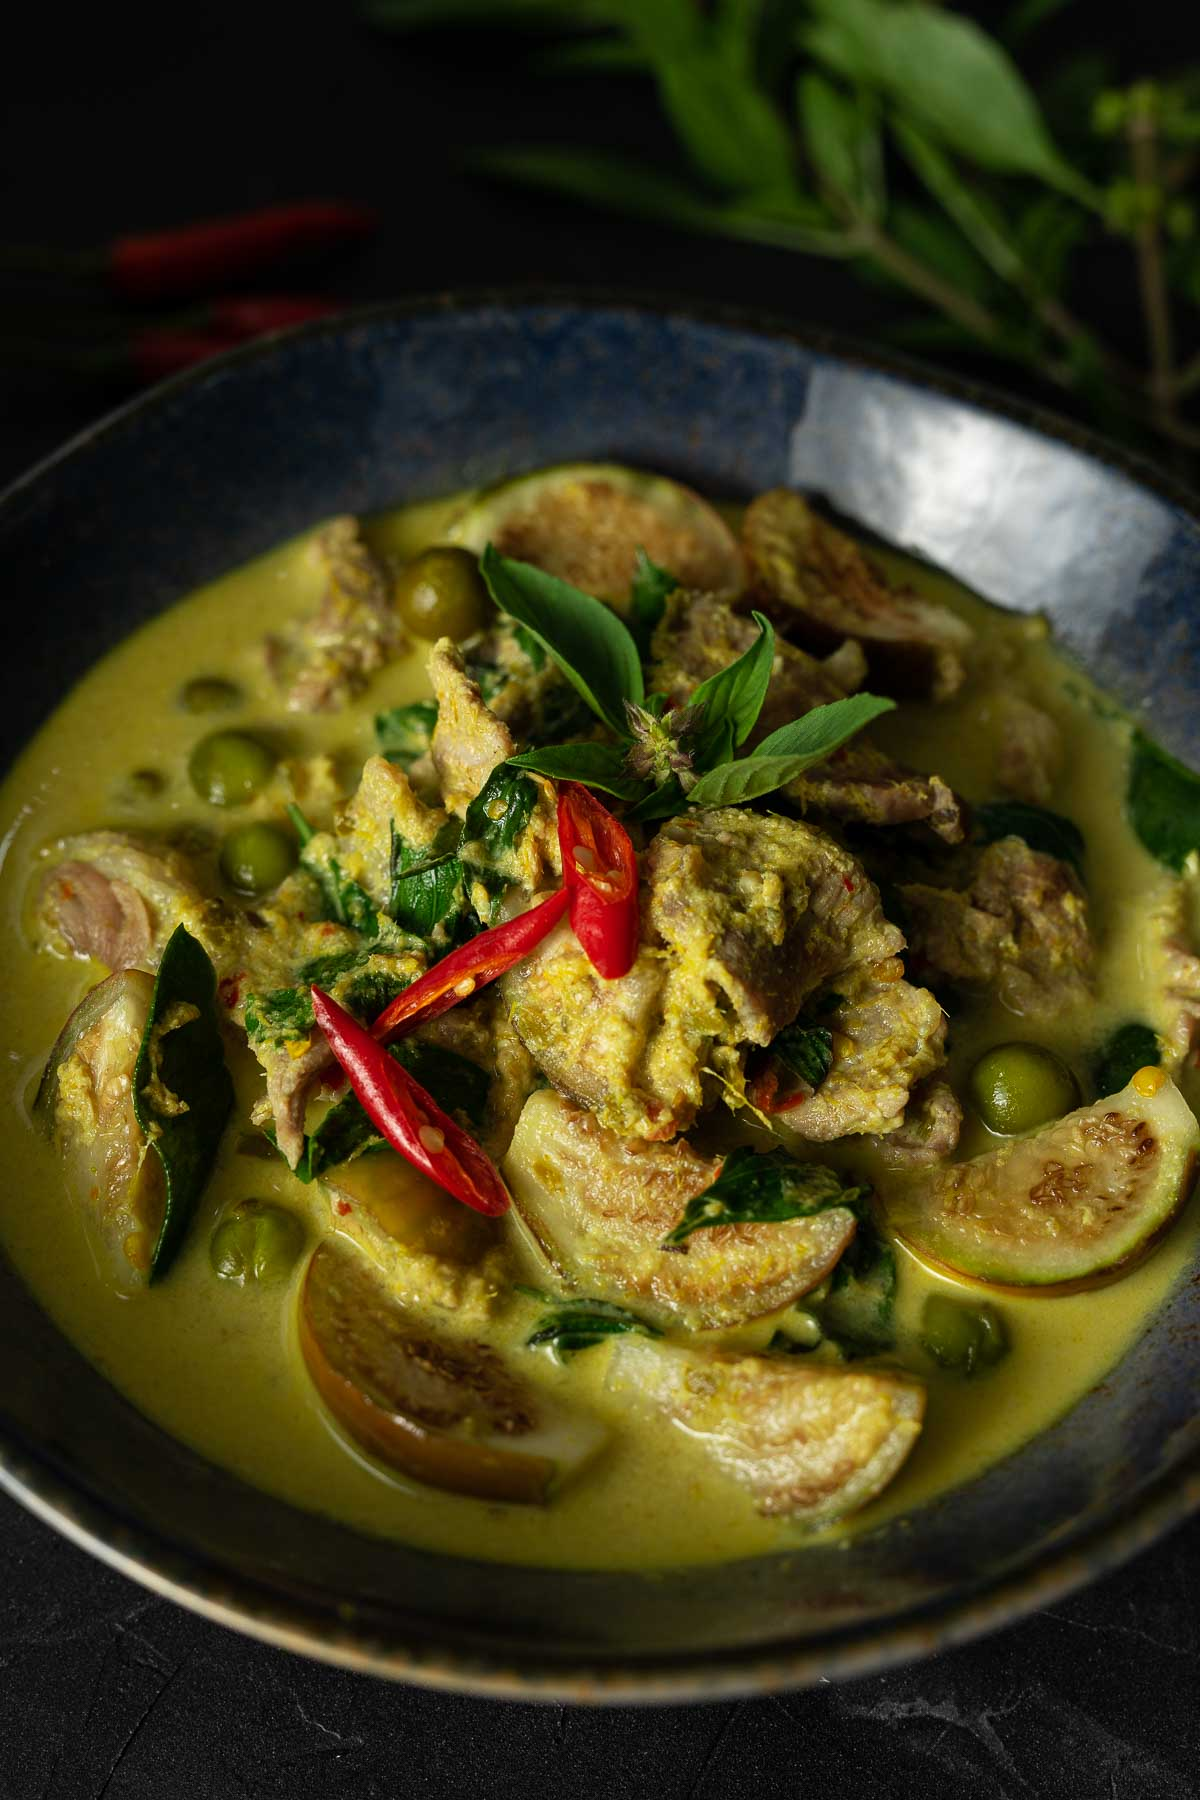 Thai green beef curry with eggplant garnished with Thai basil leaves and sliced red chilies in a blue bowl on a black surface